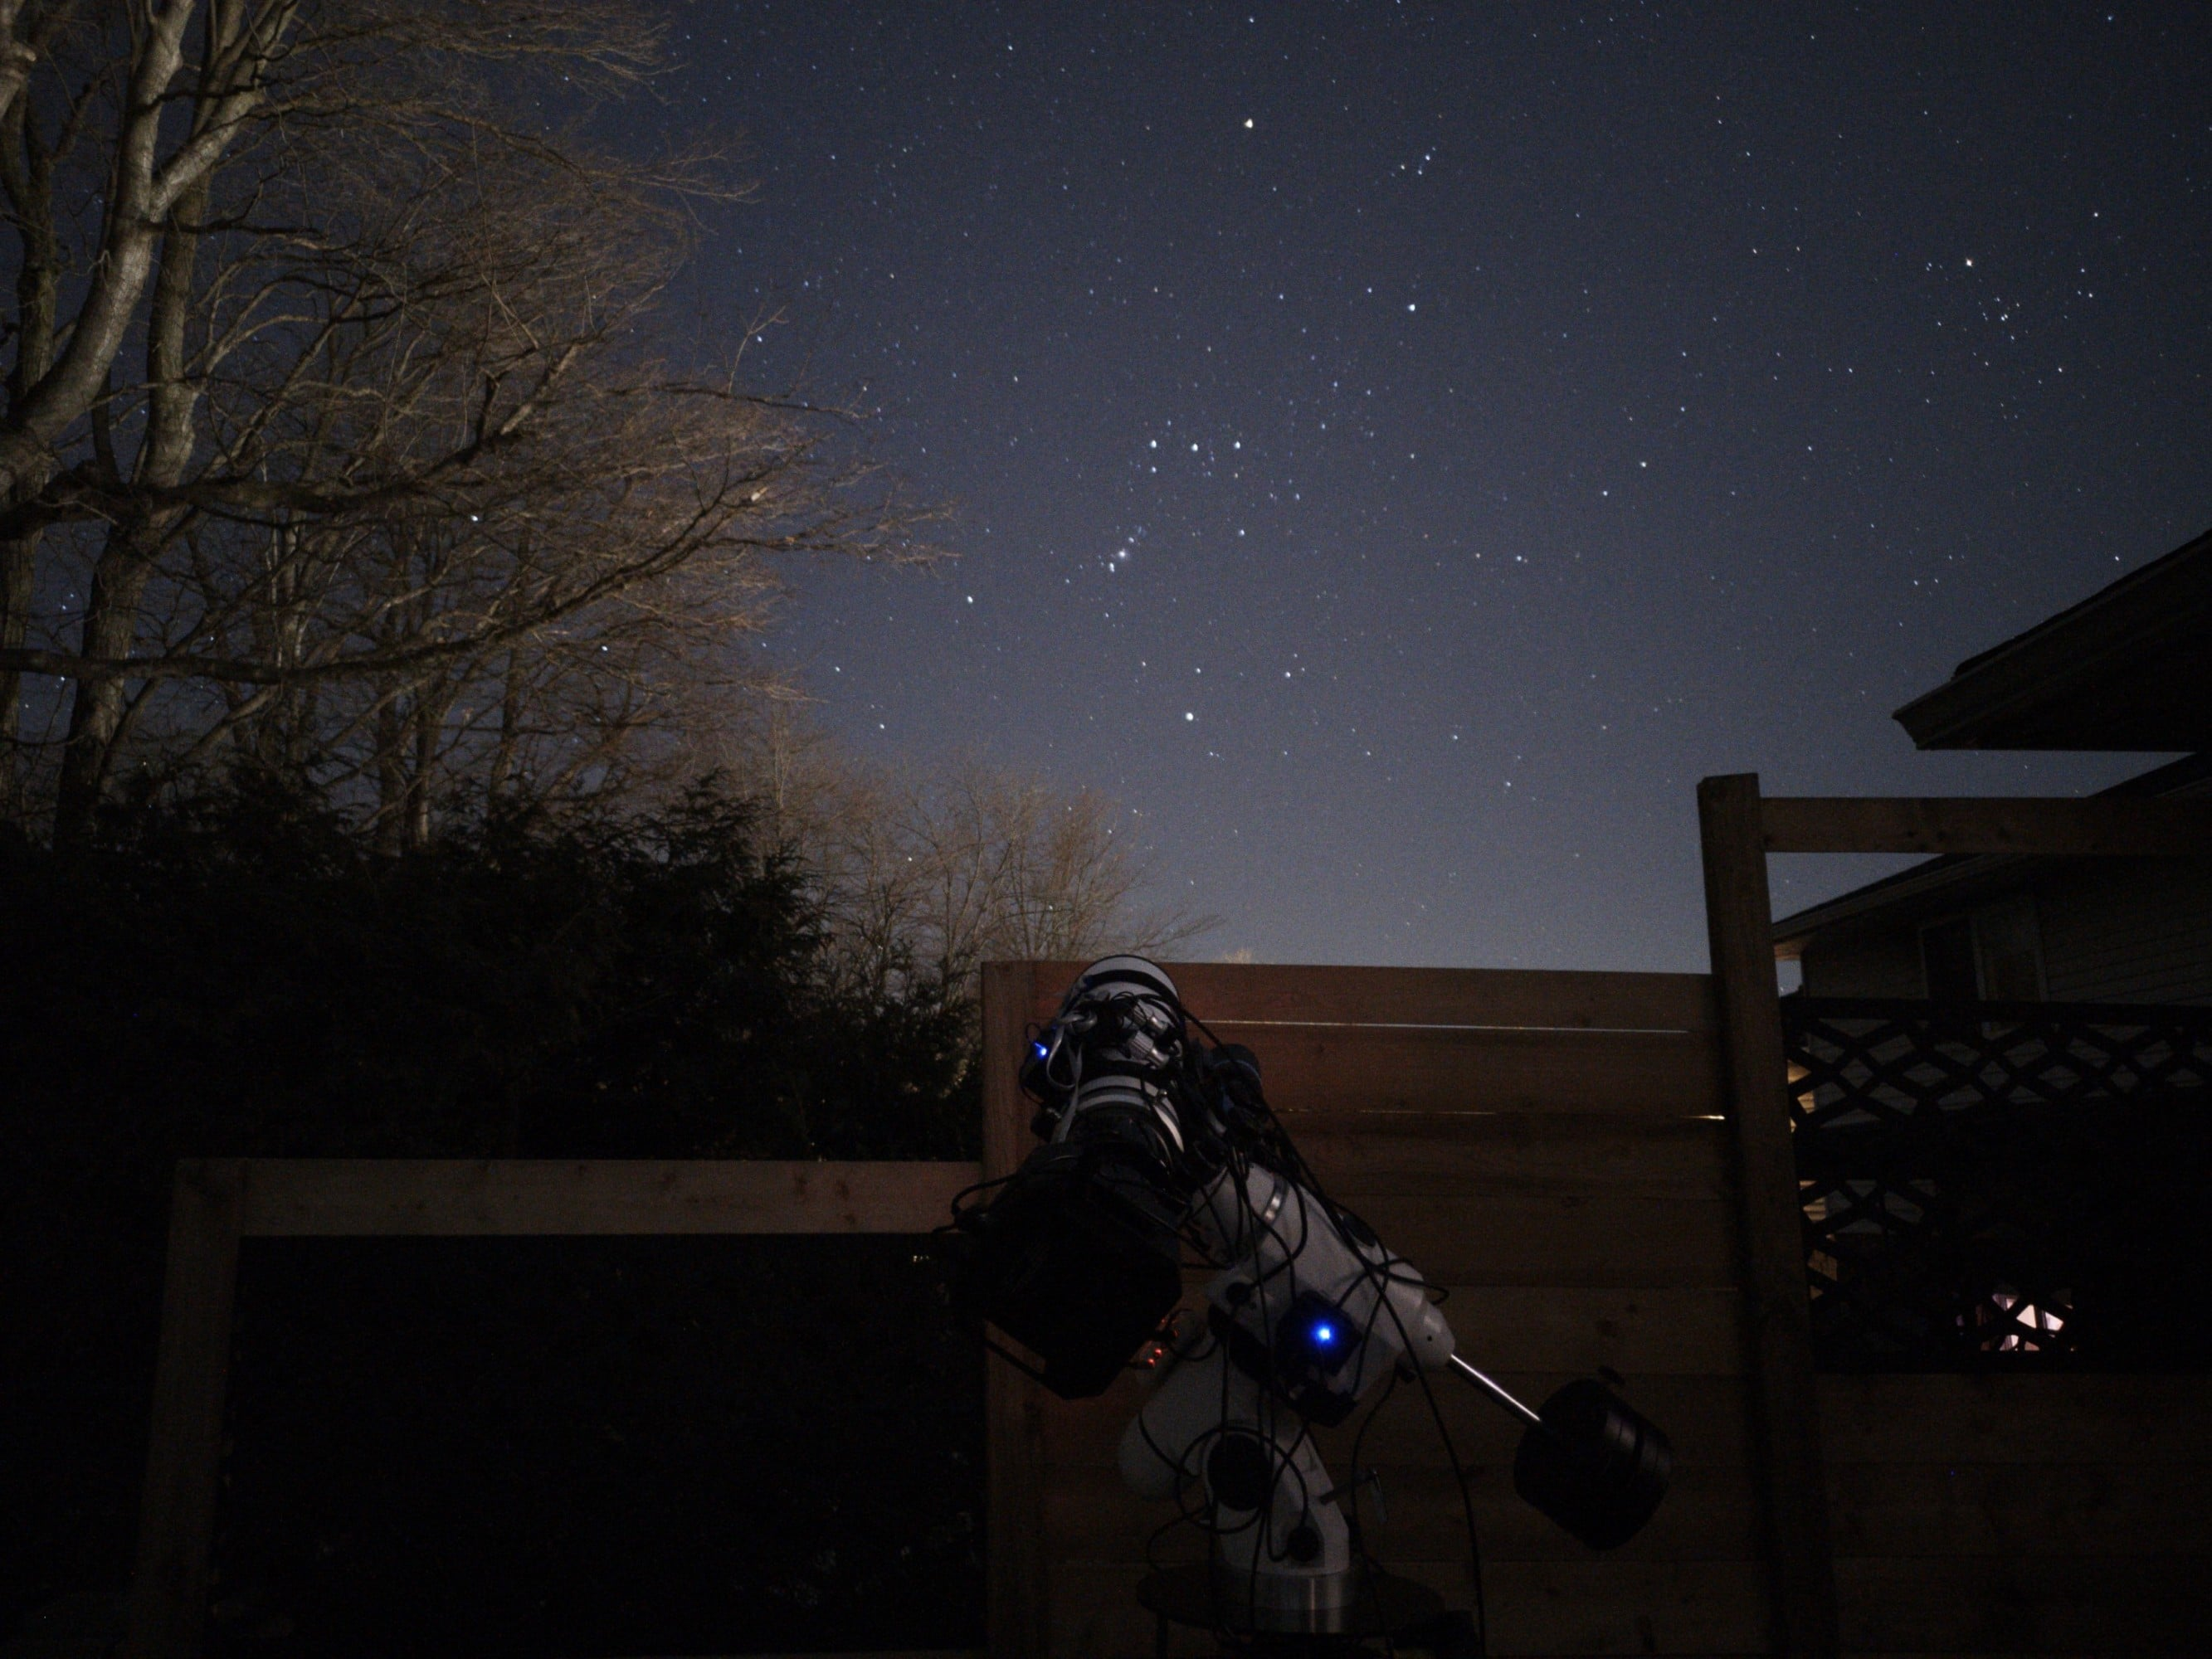 Esprit 100 triplet refractor pointed at the constellation of Orion